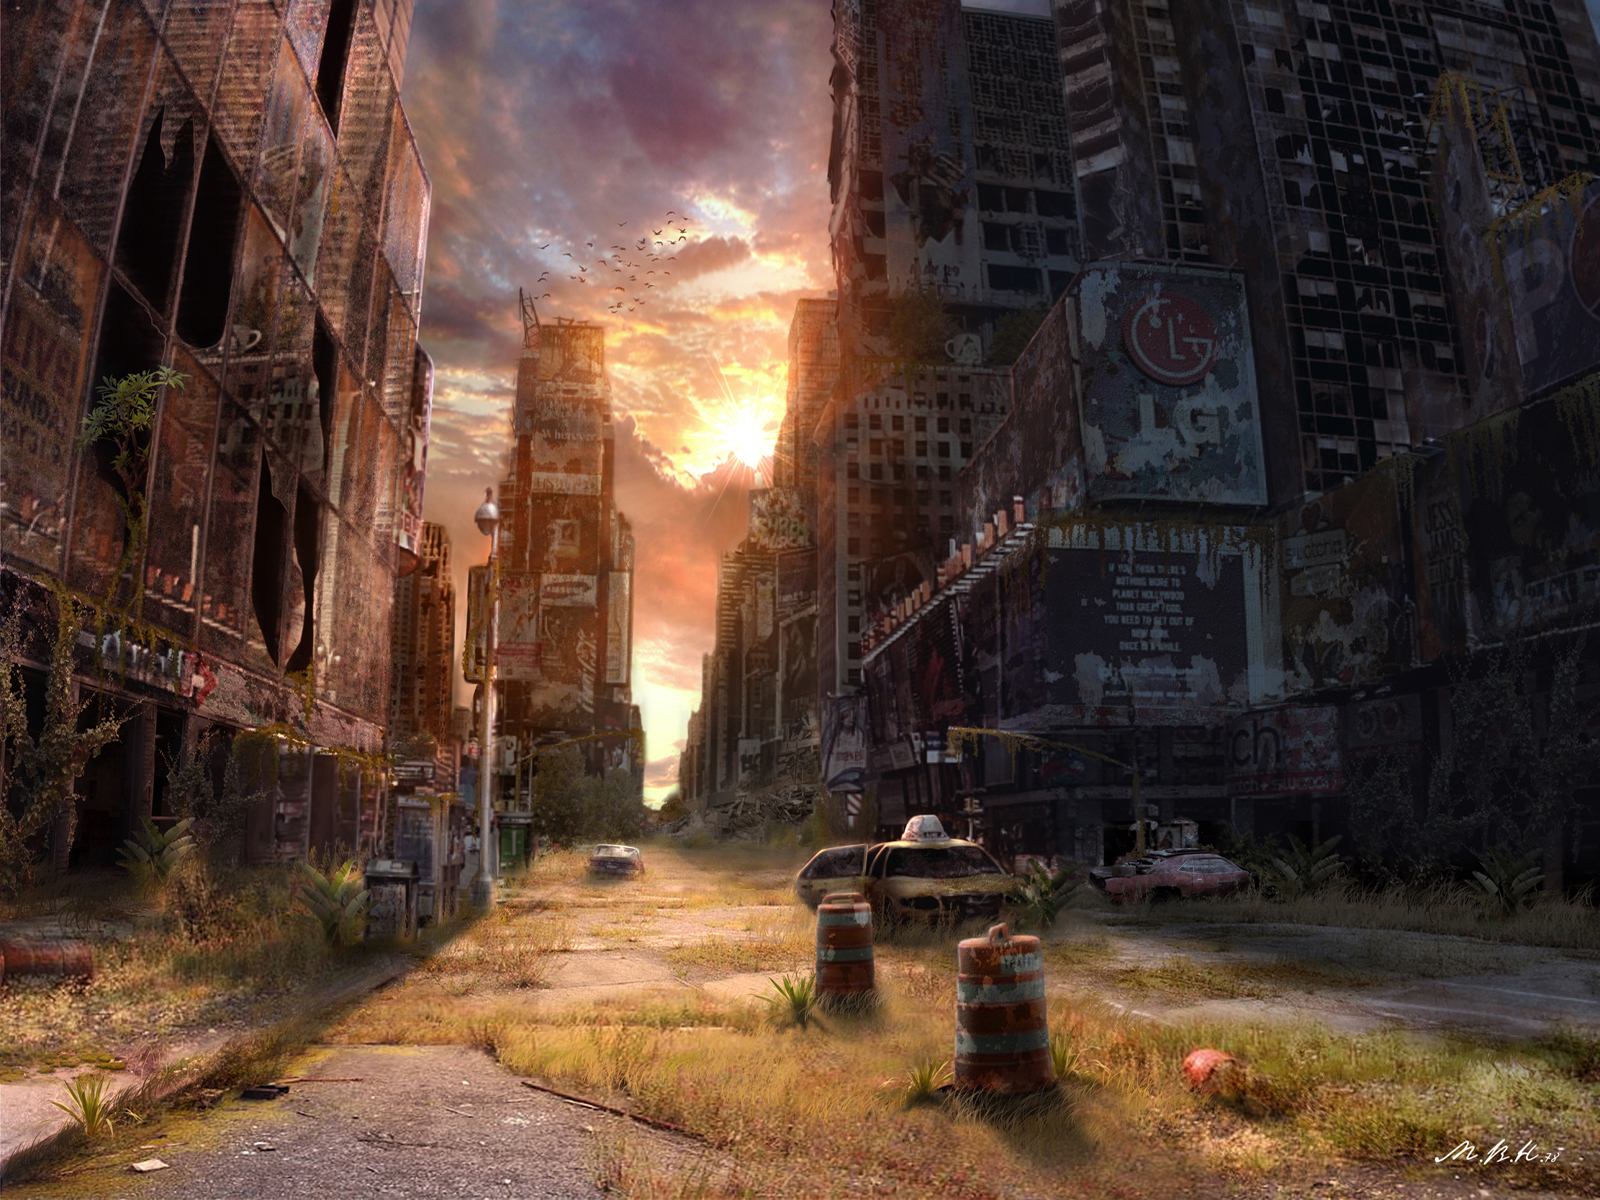 Post Apocalypse 1081737 Hd Wallpaper Backgrounds Download